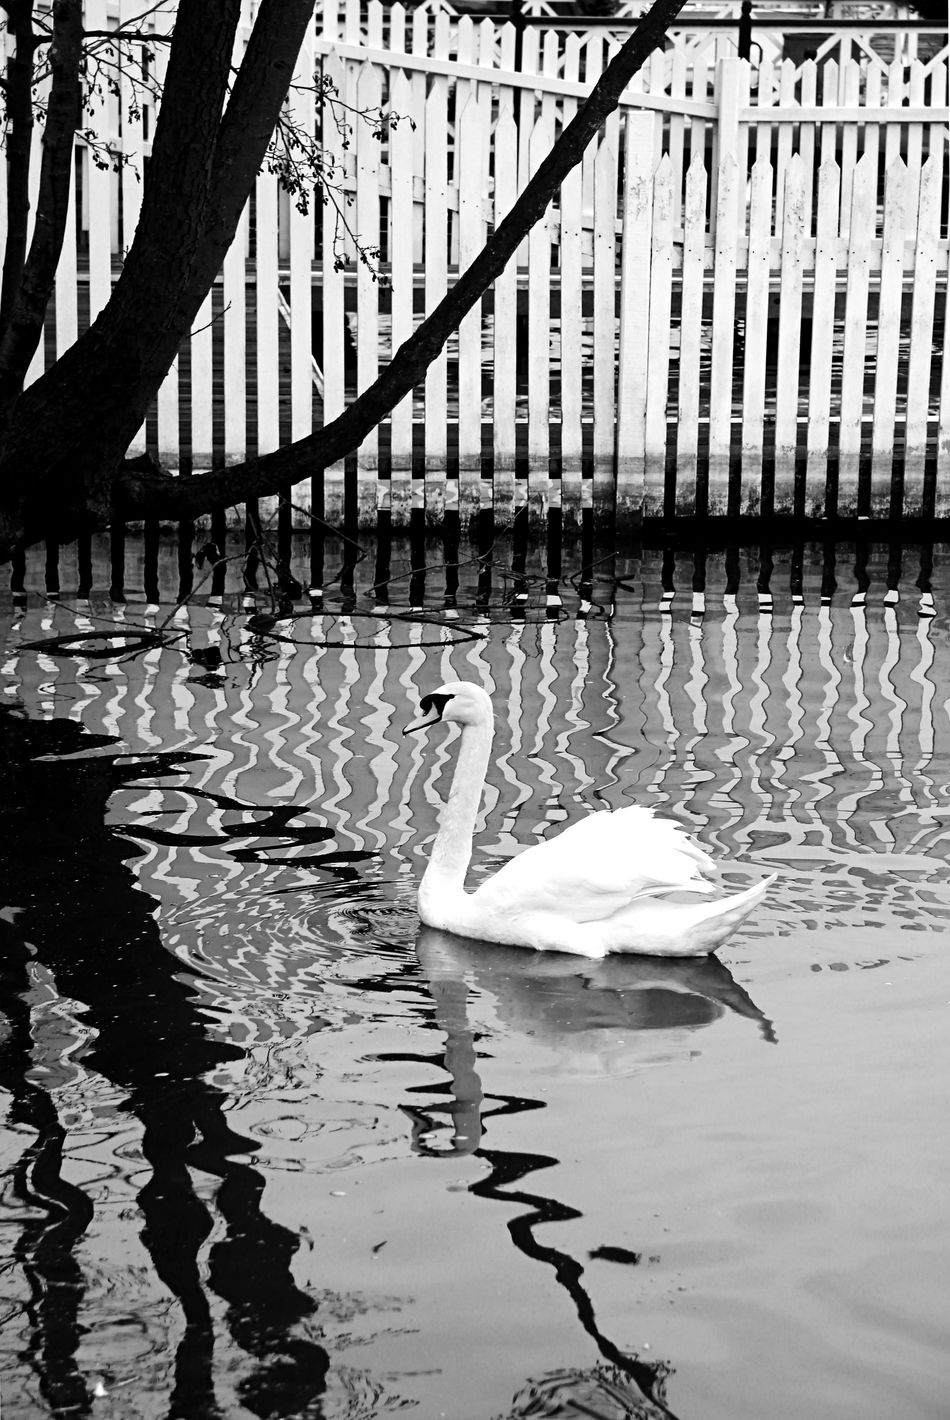 Animal Themes Black And White Fence Fowl Henley On Thames Nature Reflection River Thames River Thames Bank Single Animal Swan Treee U